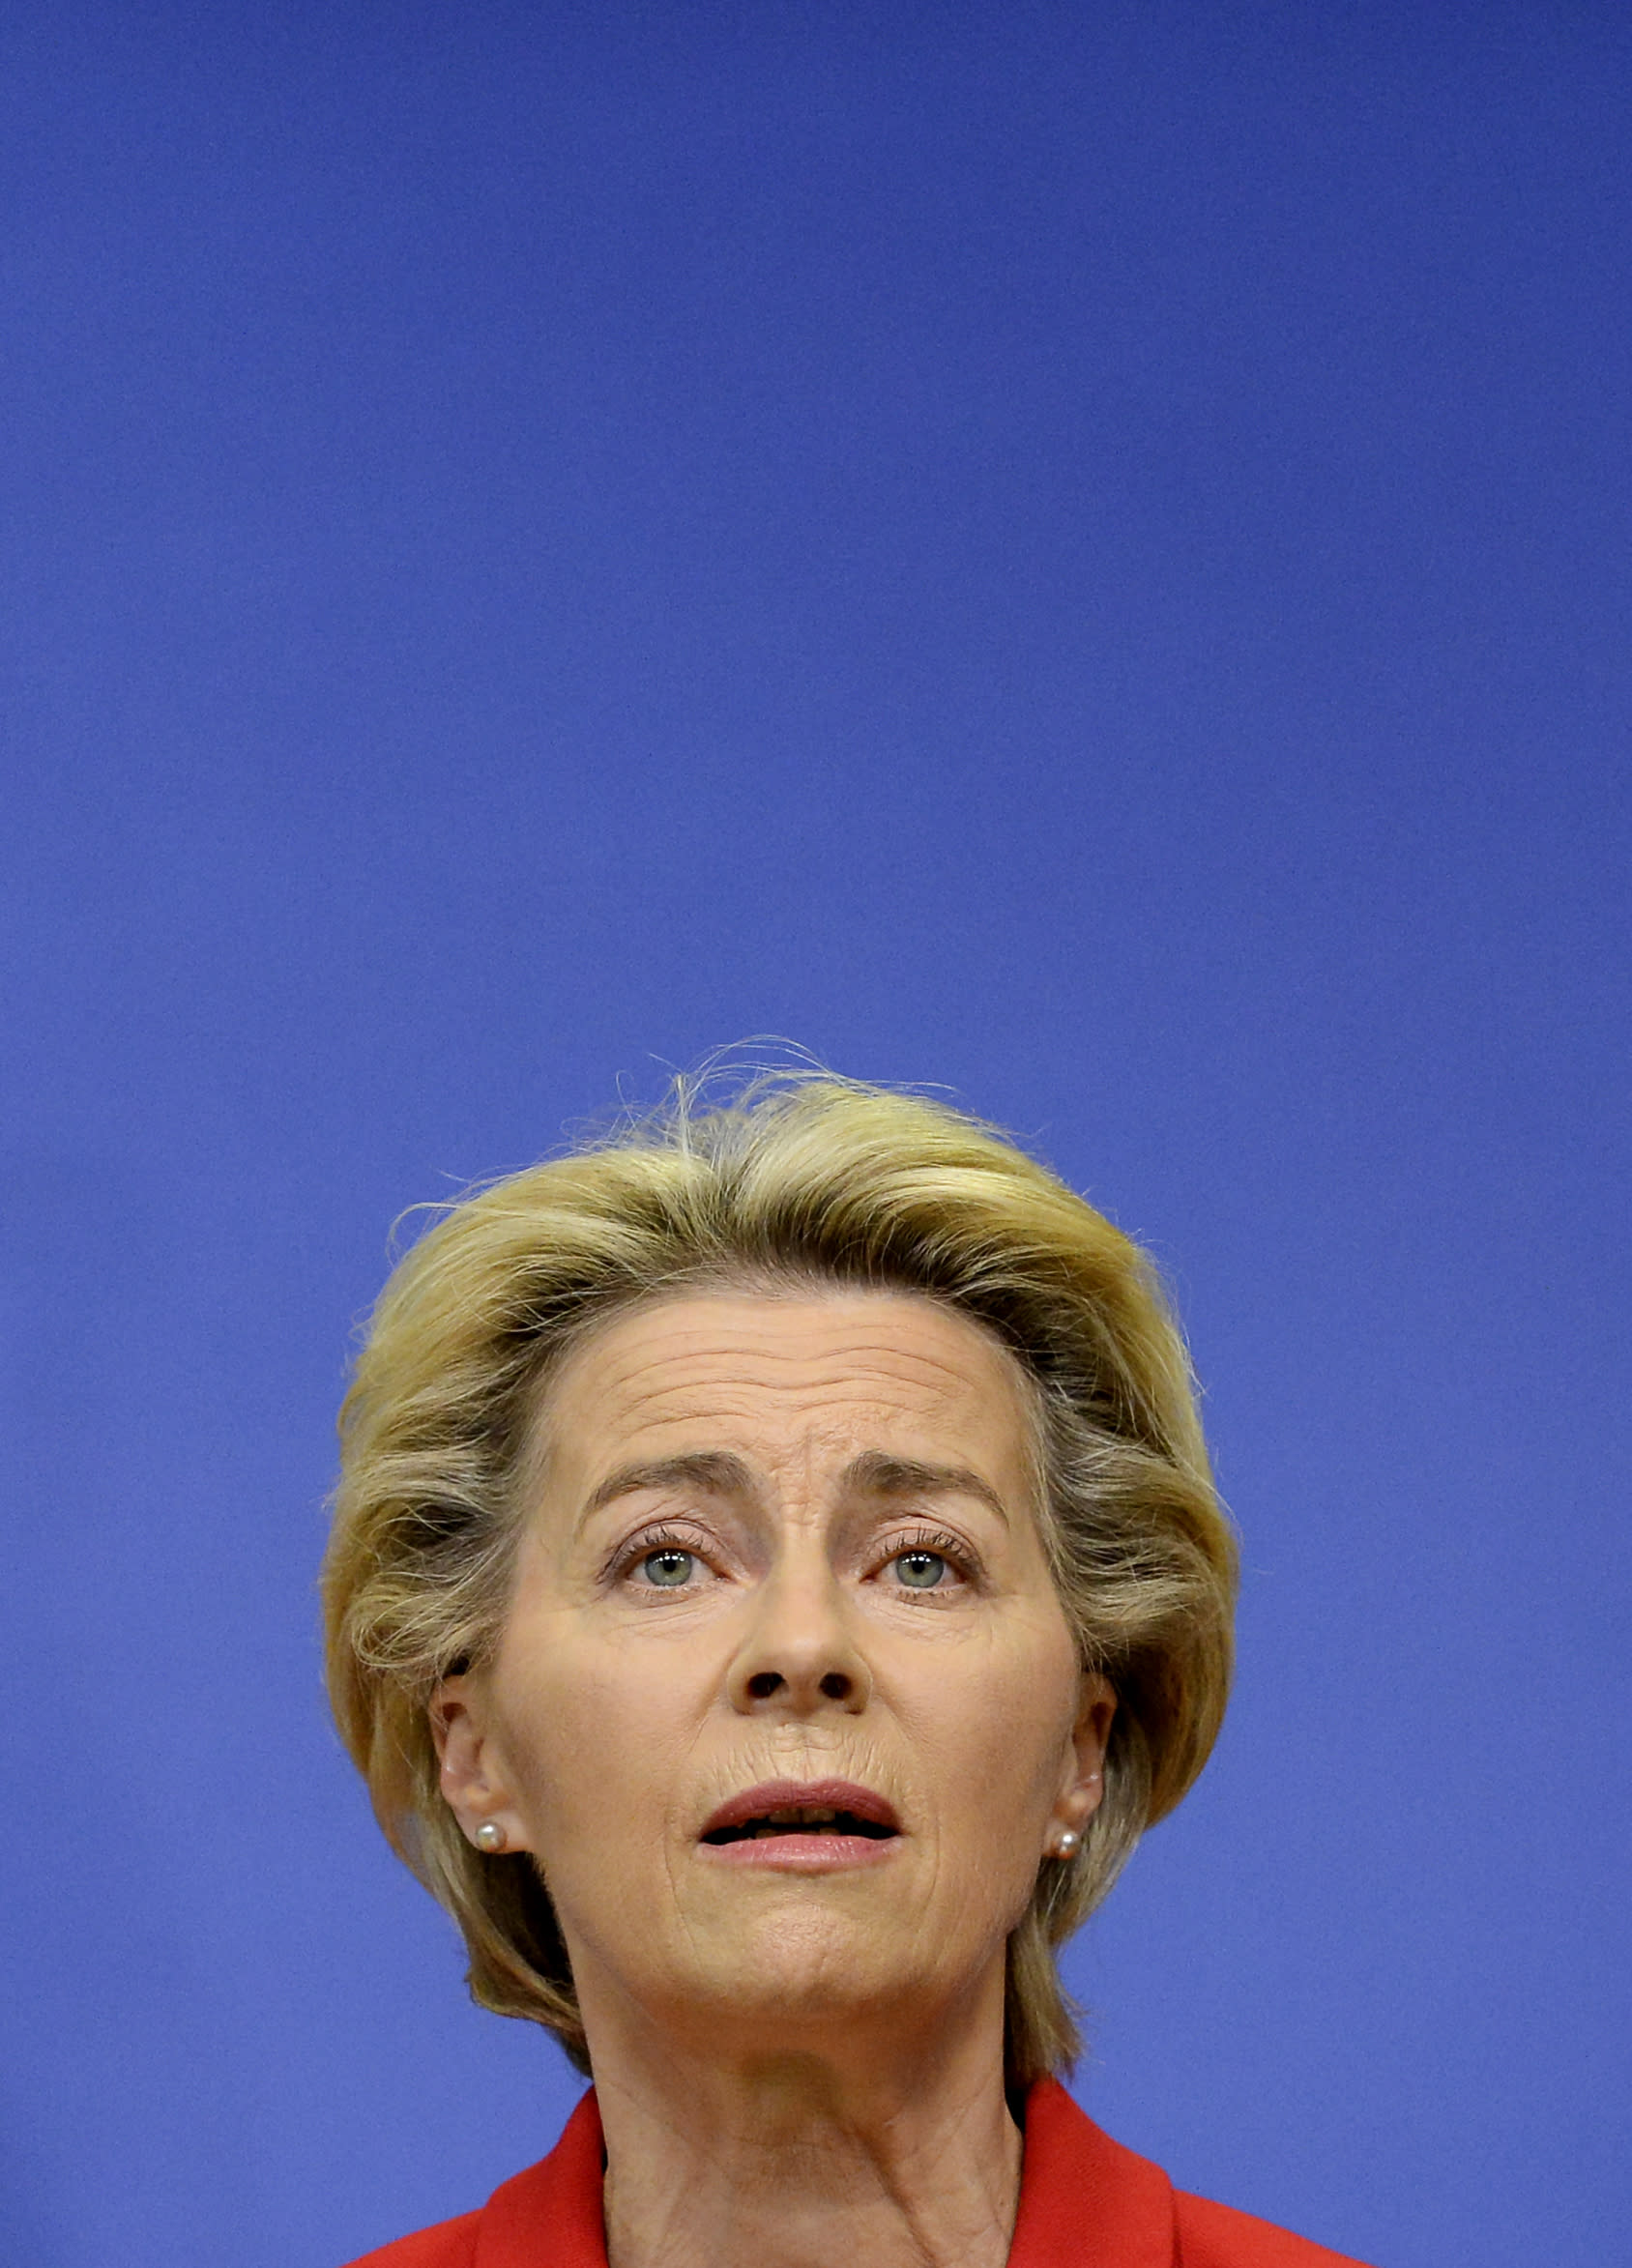 European Commission President Ursula von der Leyen makes a statement regarding the Withdrawal Agreement at EU headquarters in Brussels, Thursday, Oct. 1, 2020. The European Union took legal action against Britain on Thursday over its plans to pass legislation that would breach parts of the legally binding divorce agreement the two sides reached late last year. (Johanna Geron, Pool via AP)